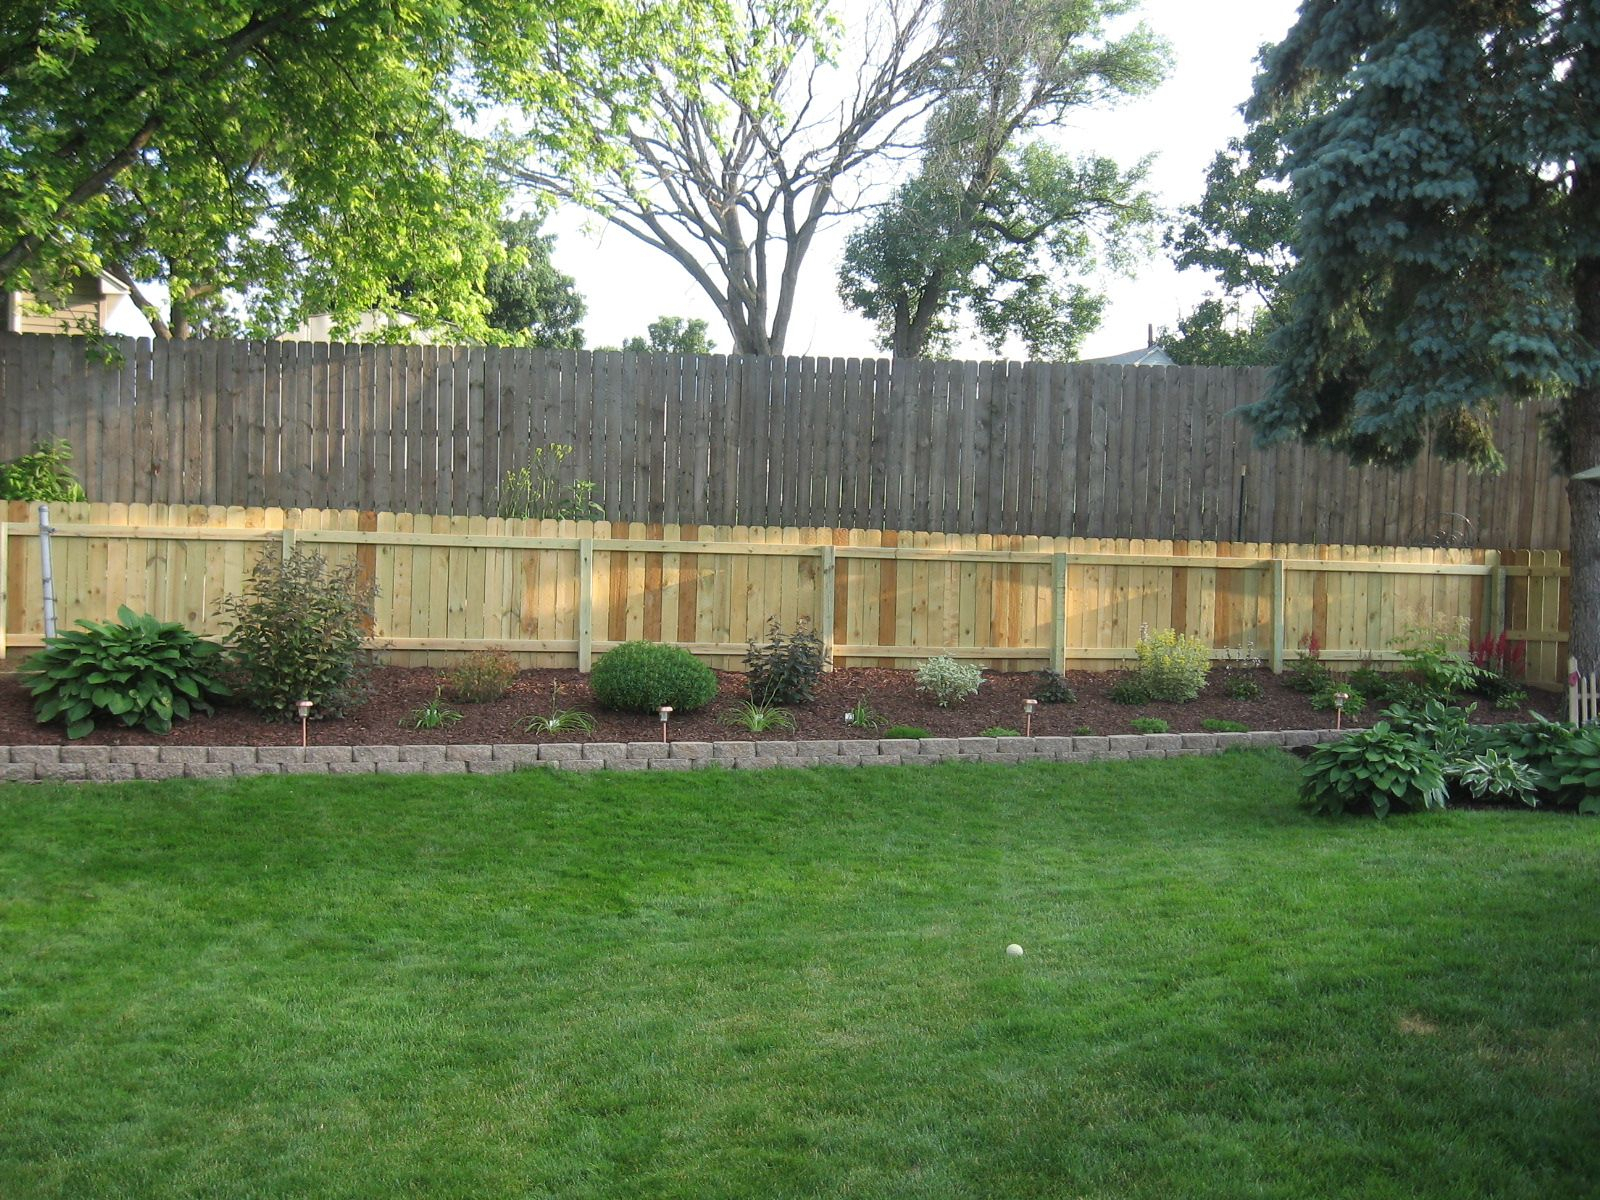 7 Top Privacy Fencing Ideas For Backyards Gallery Home Garden within Privacy Fence Ideas For Backyard